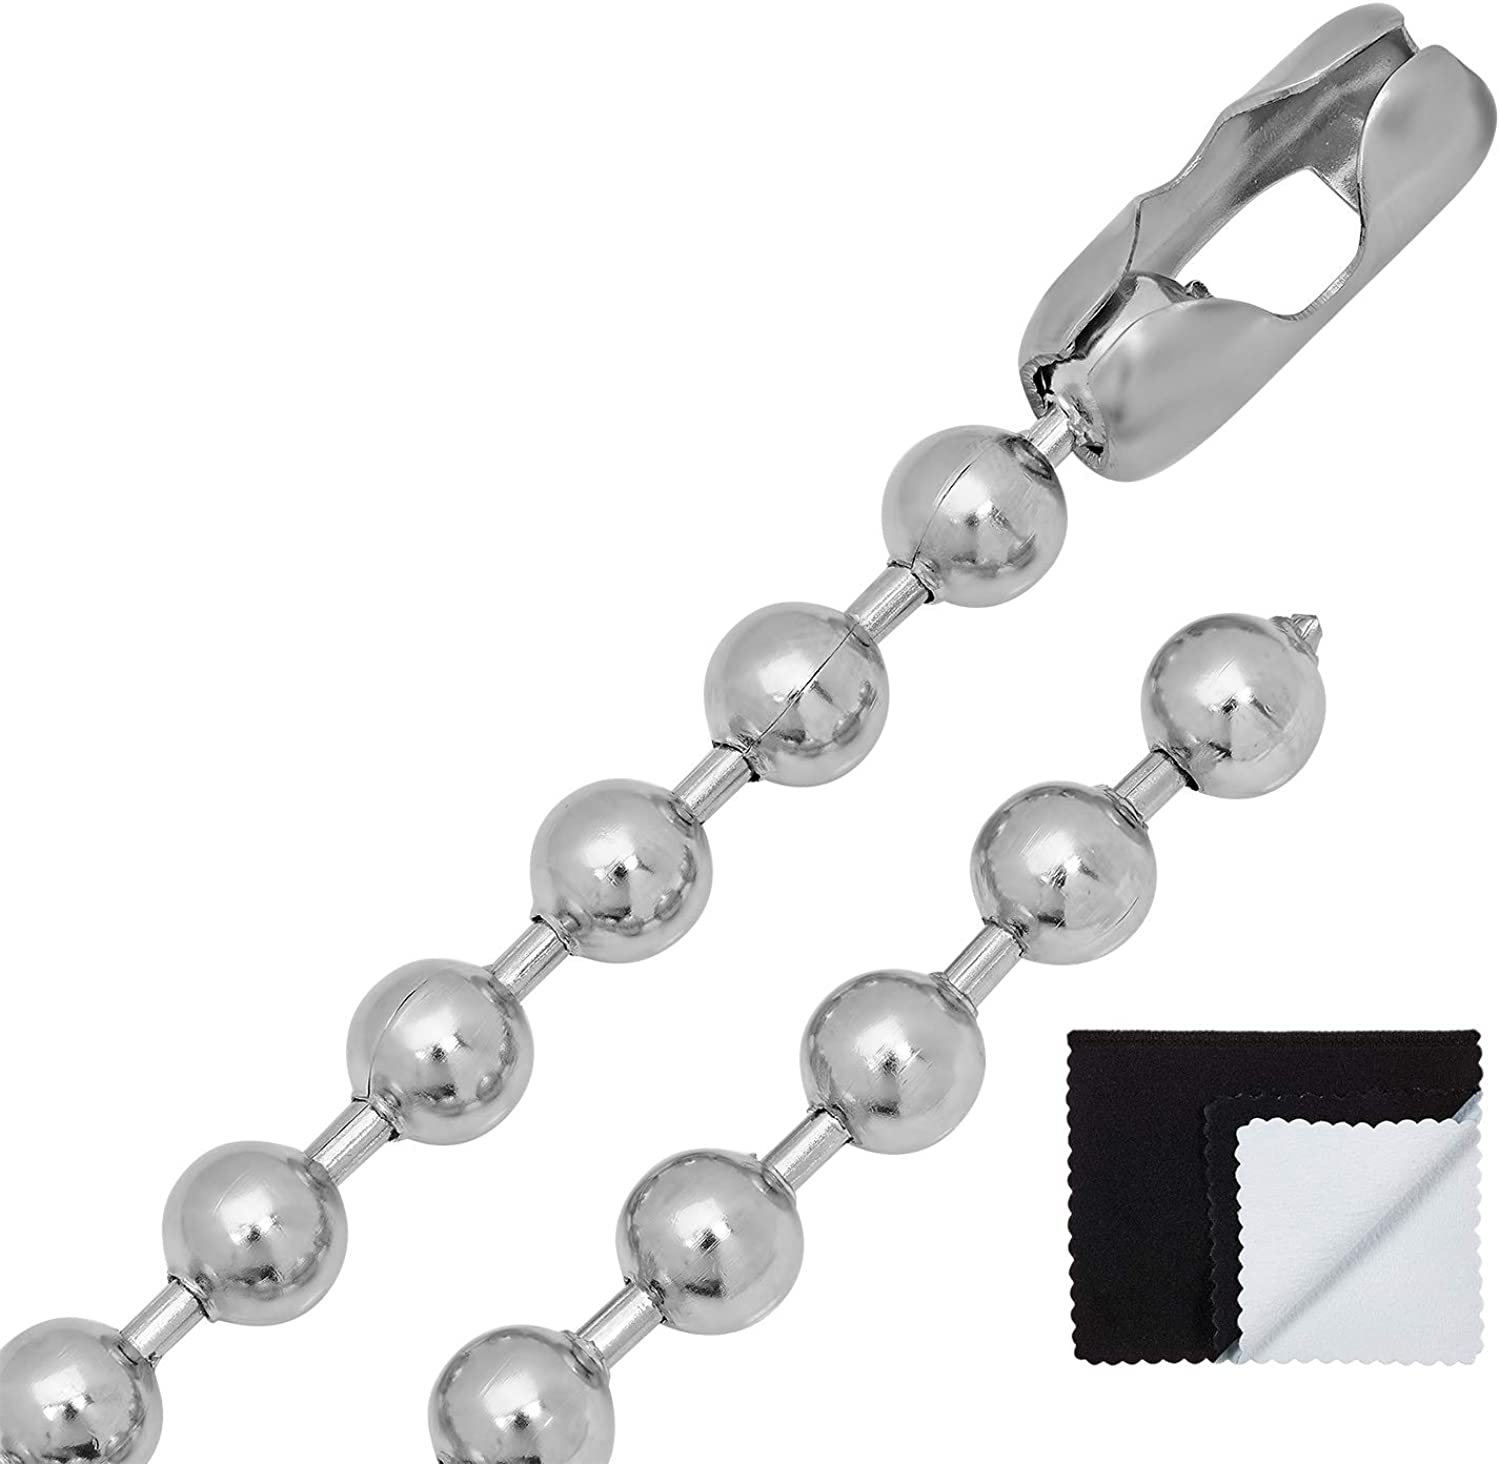 The Bling Factory 2mm-8mm High-Polished Stainless Steel Round Ball Chain Necklace, 16'-40 + Jewelry Cloth & Pouch